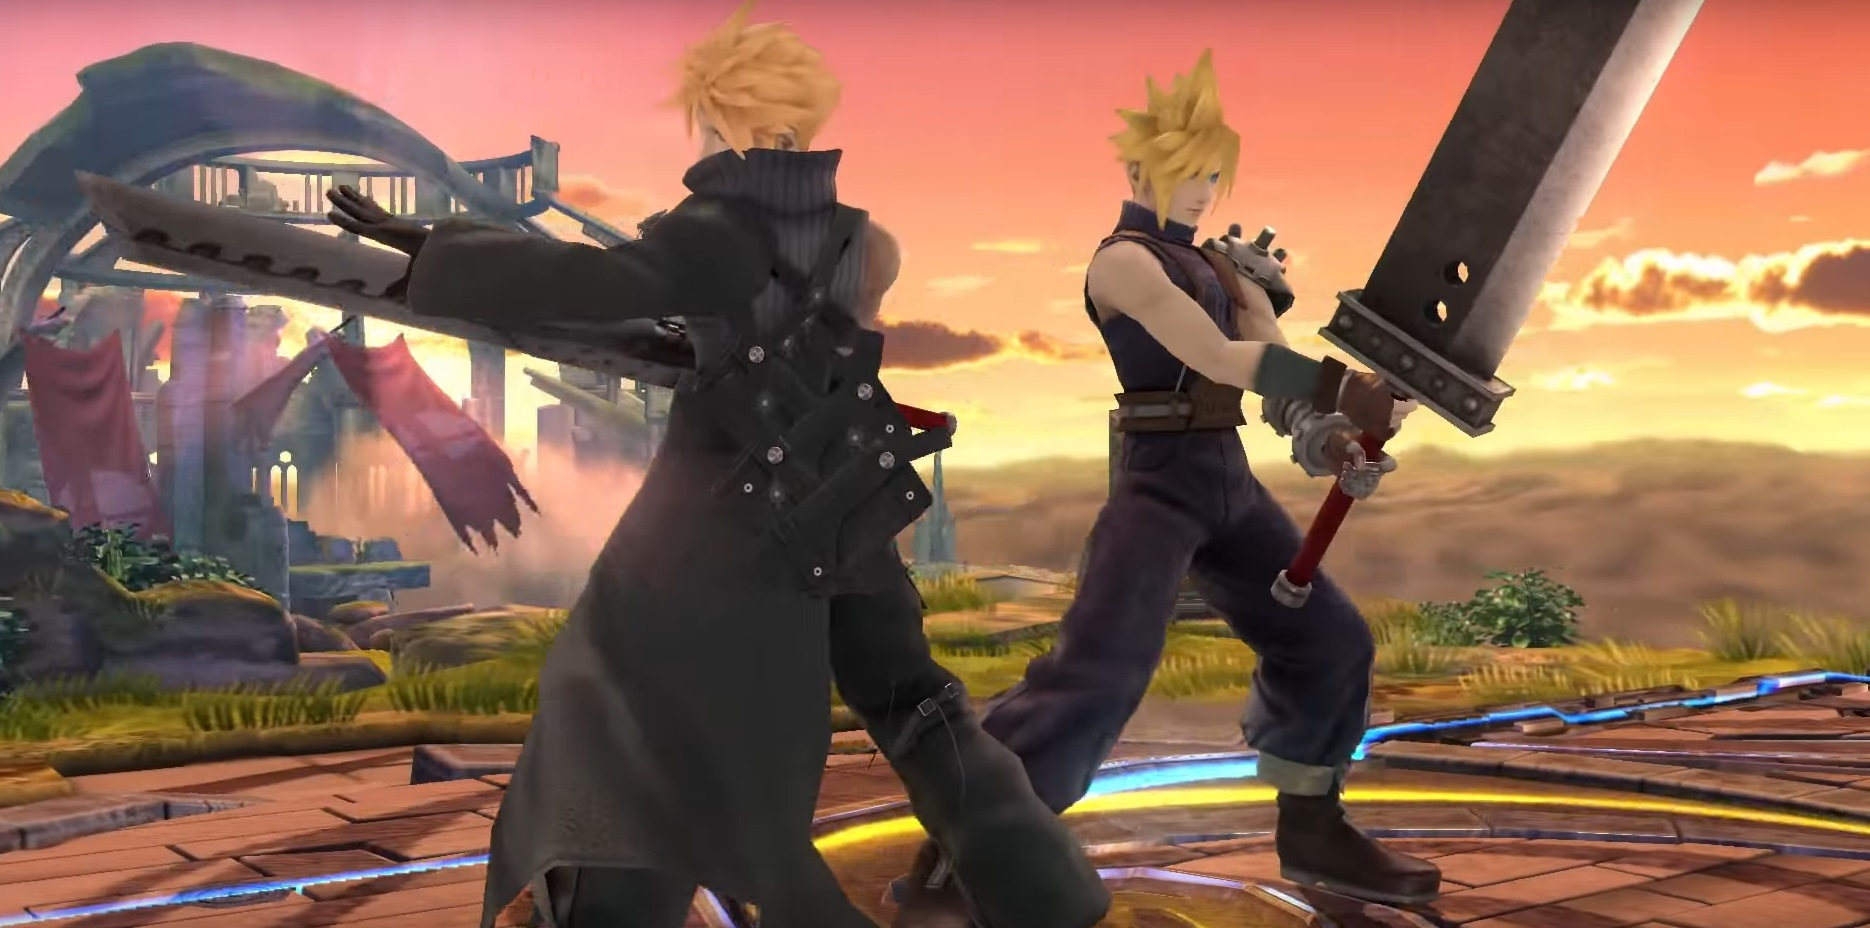 Super Smash Bros Cloud Strife 2